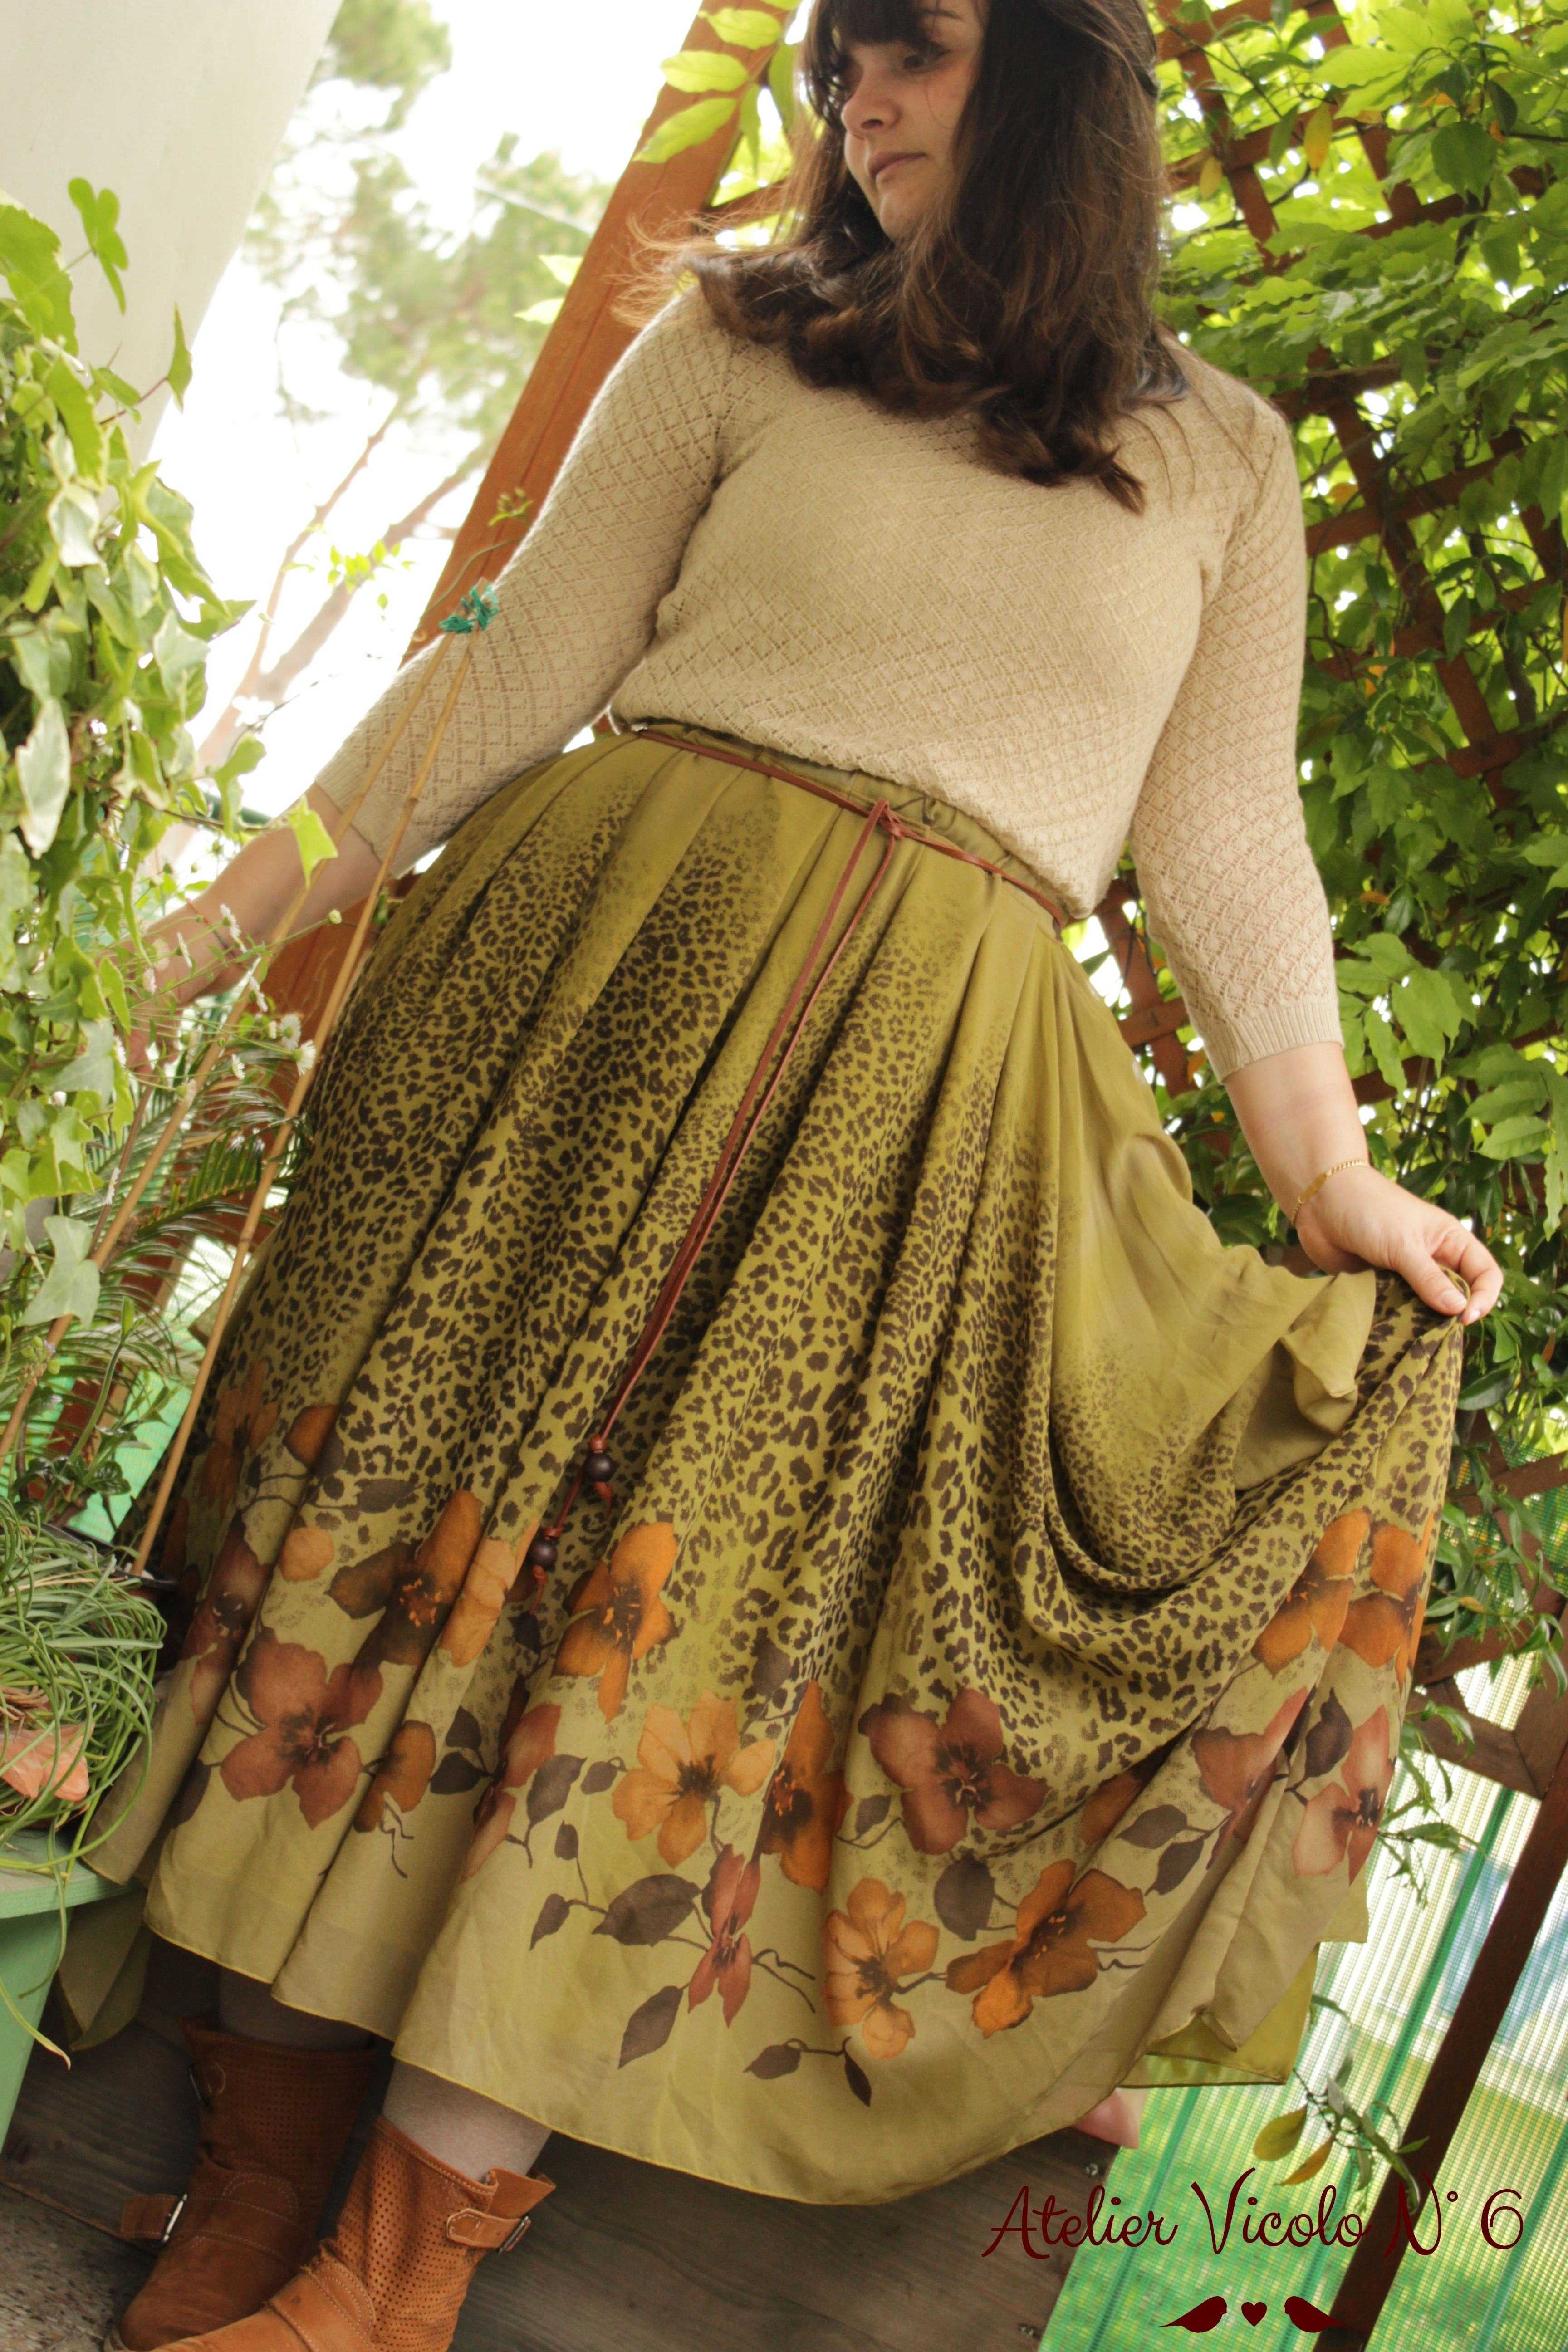 My second outfit for #mmday15 Chiffon Draped Skirt by Atelier Vicolo N° 6 !!!